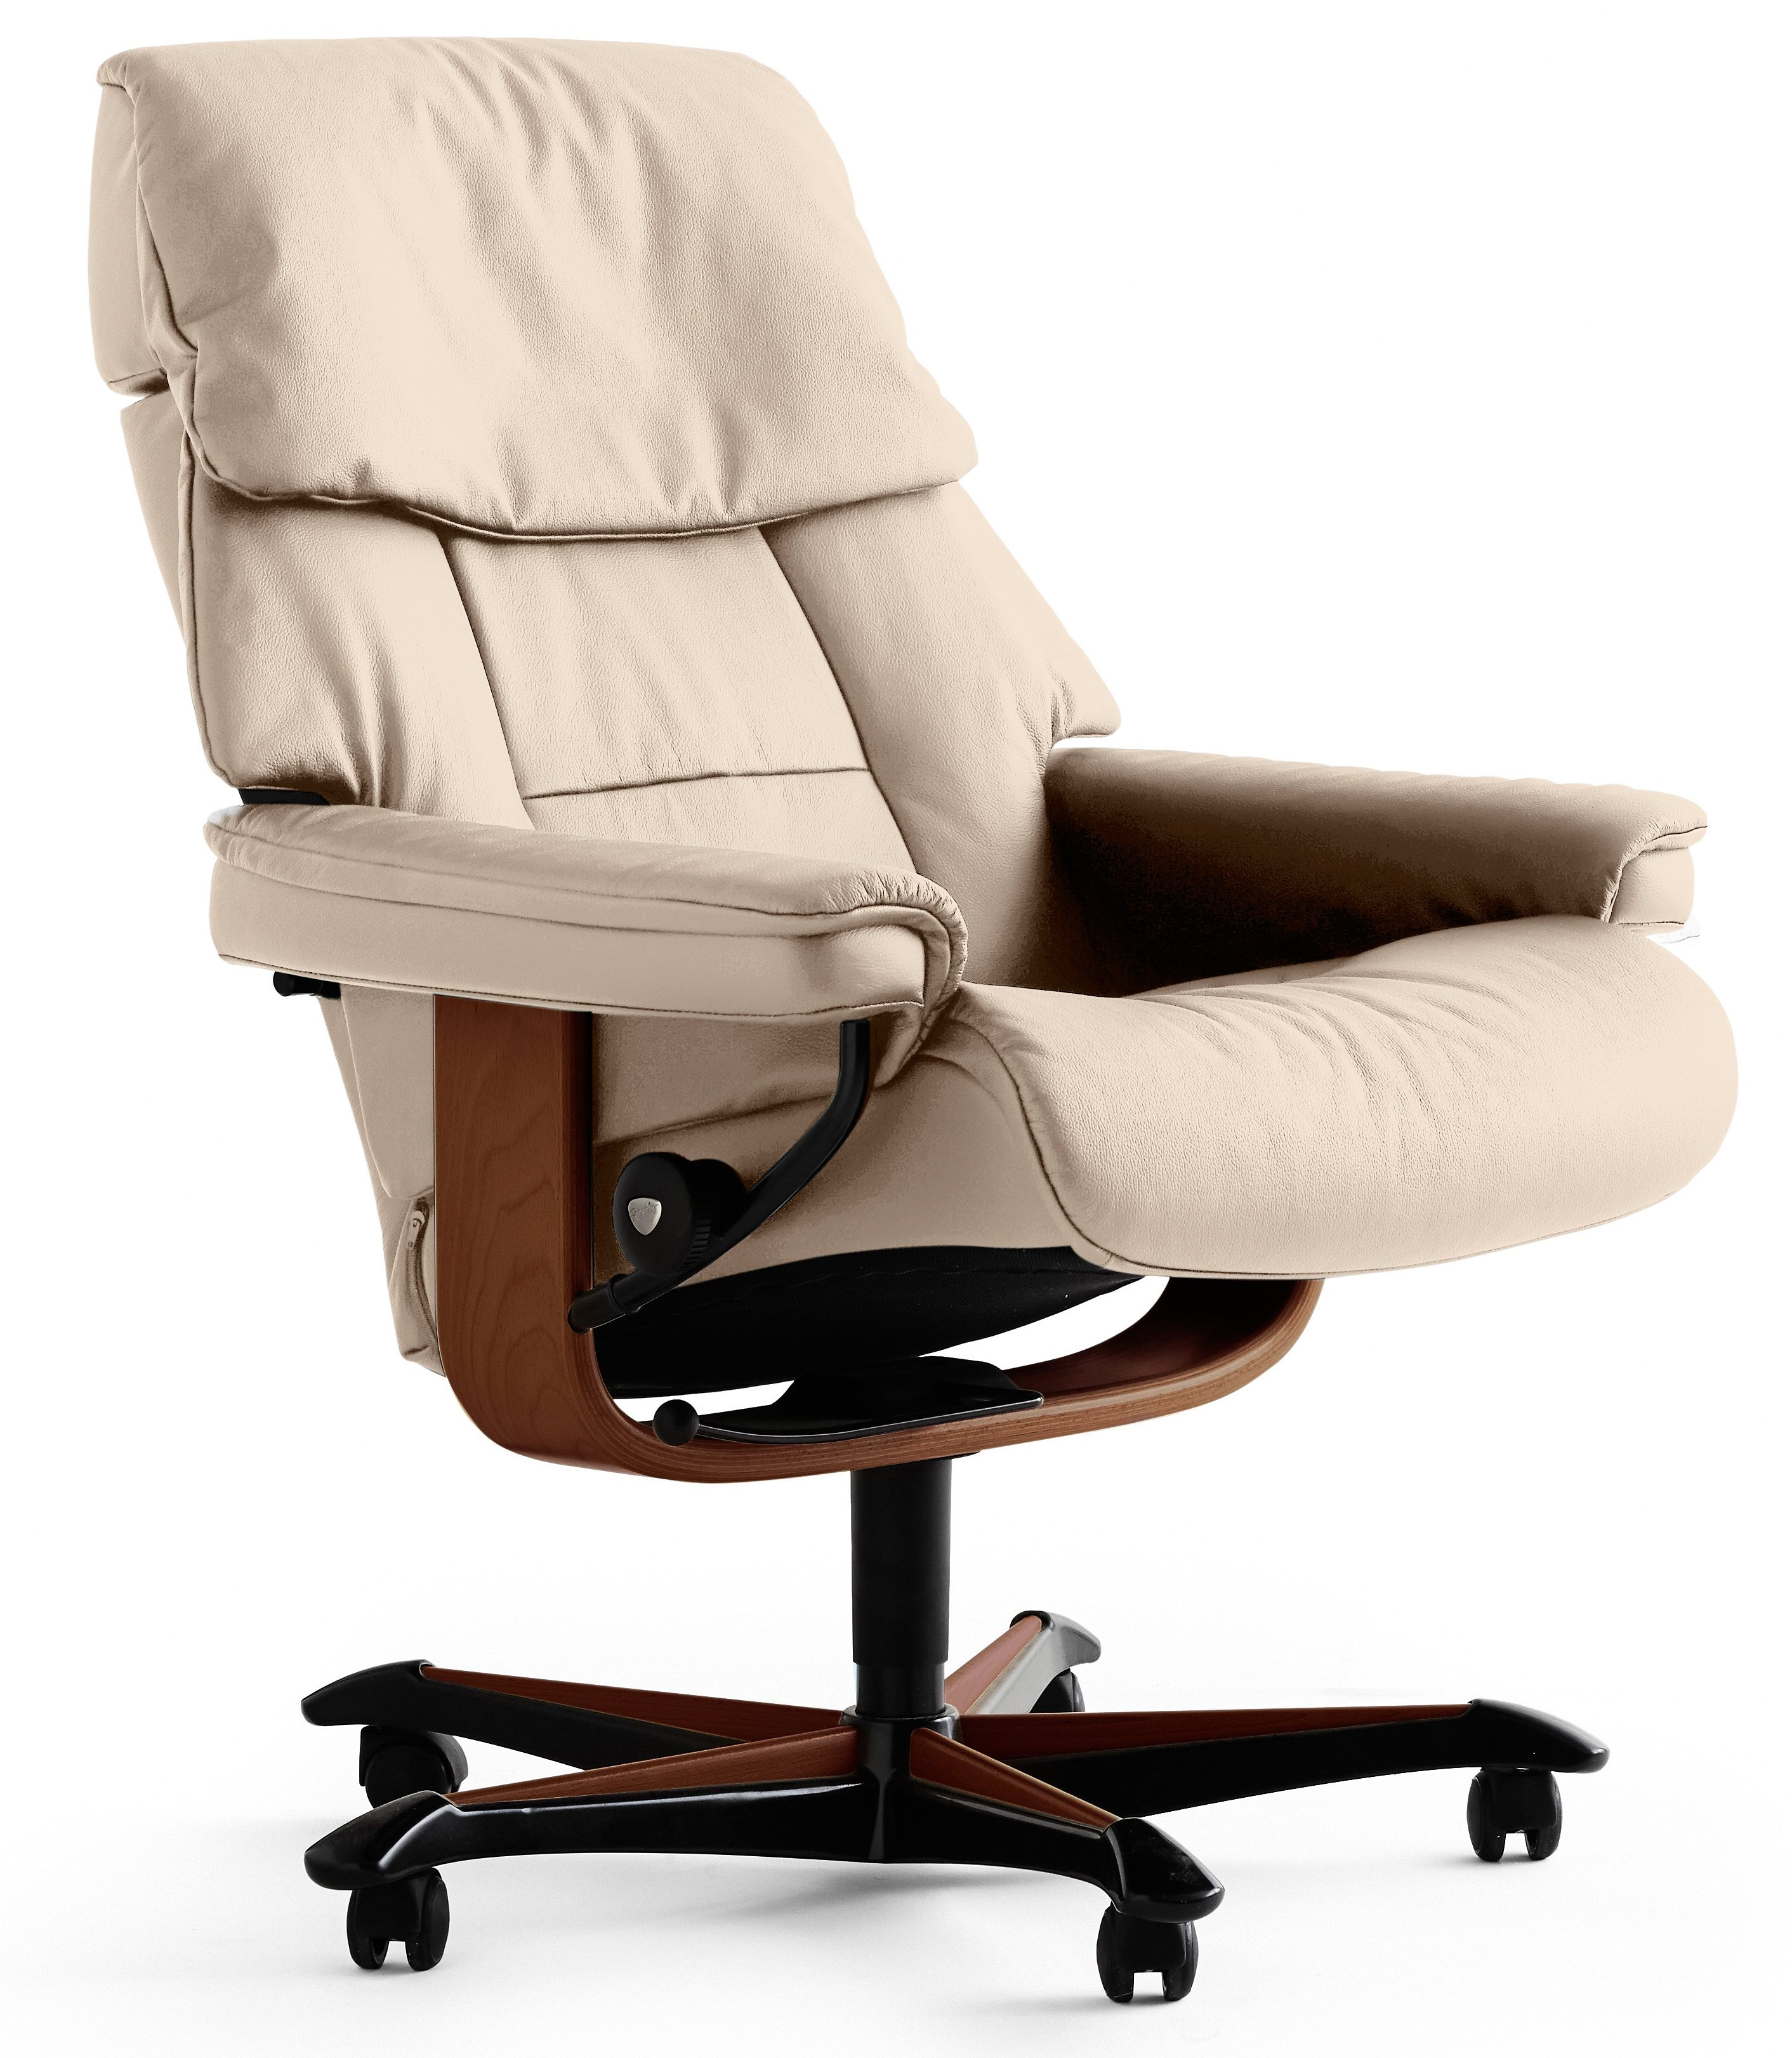 Stressless Ruby Stressless Relax Bürosessel Home Office Ruby Mit Schlaffunktion Online Kaufen Otto